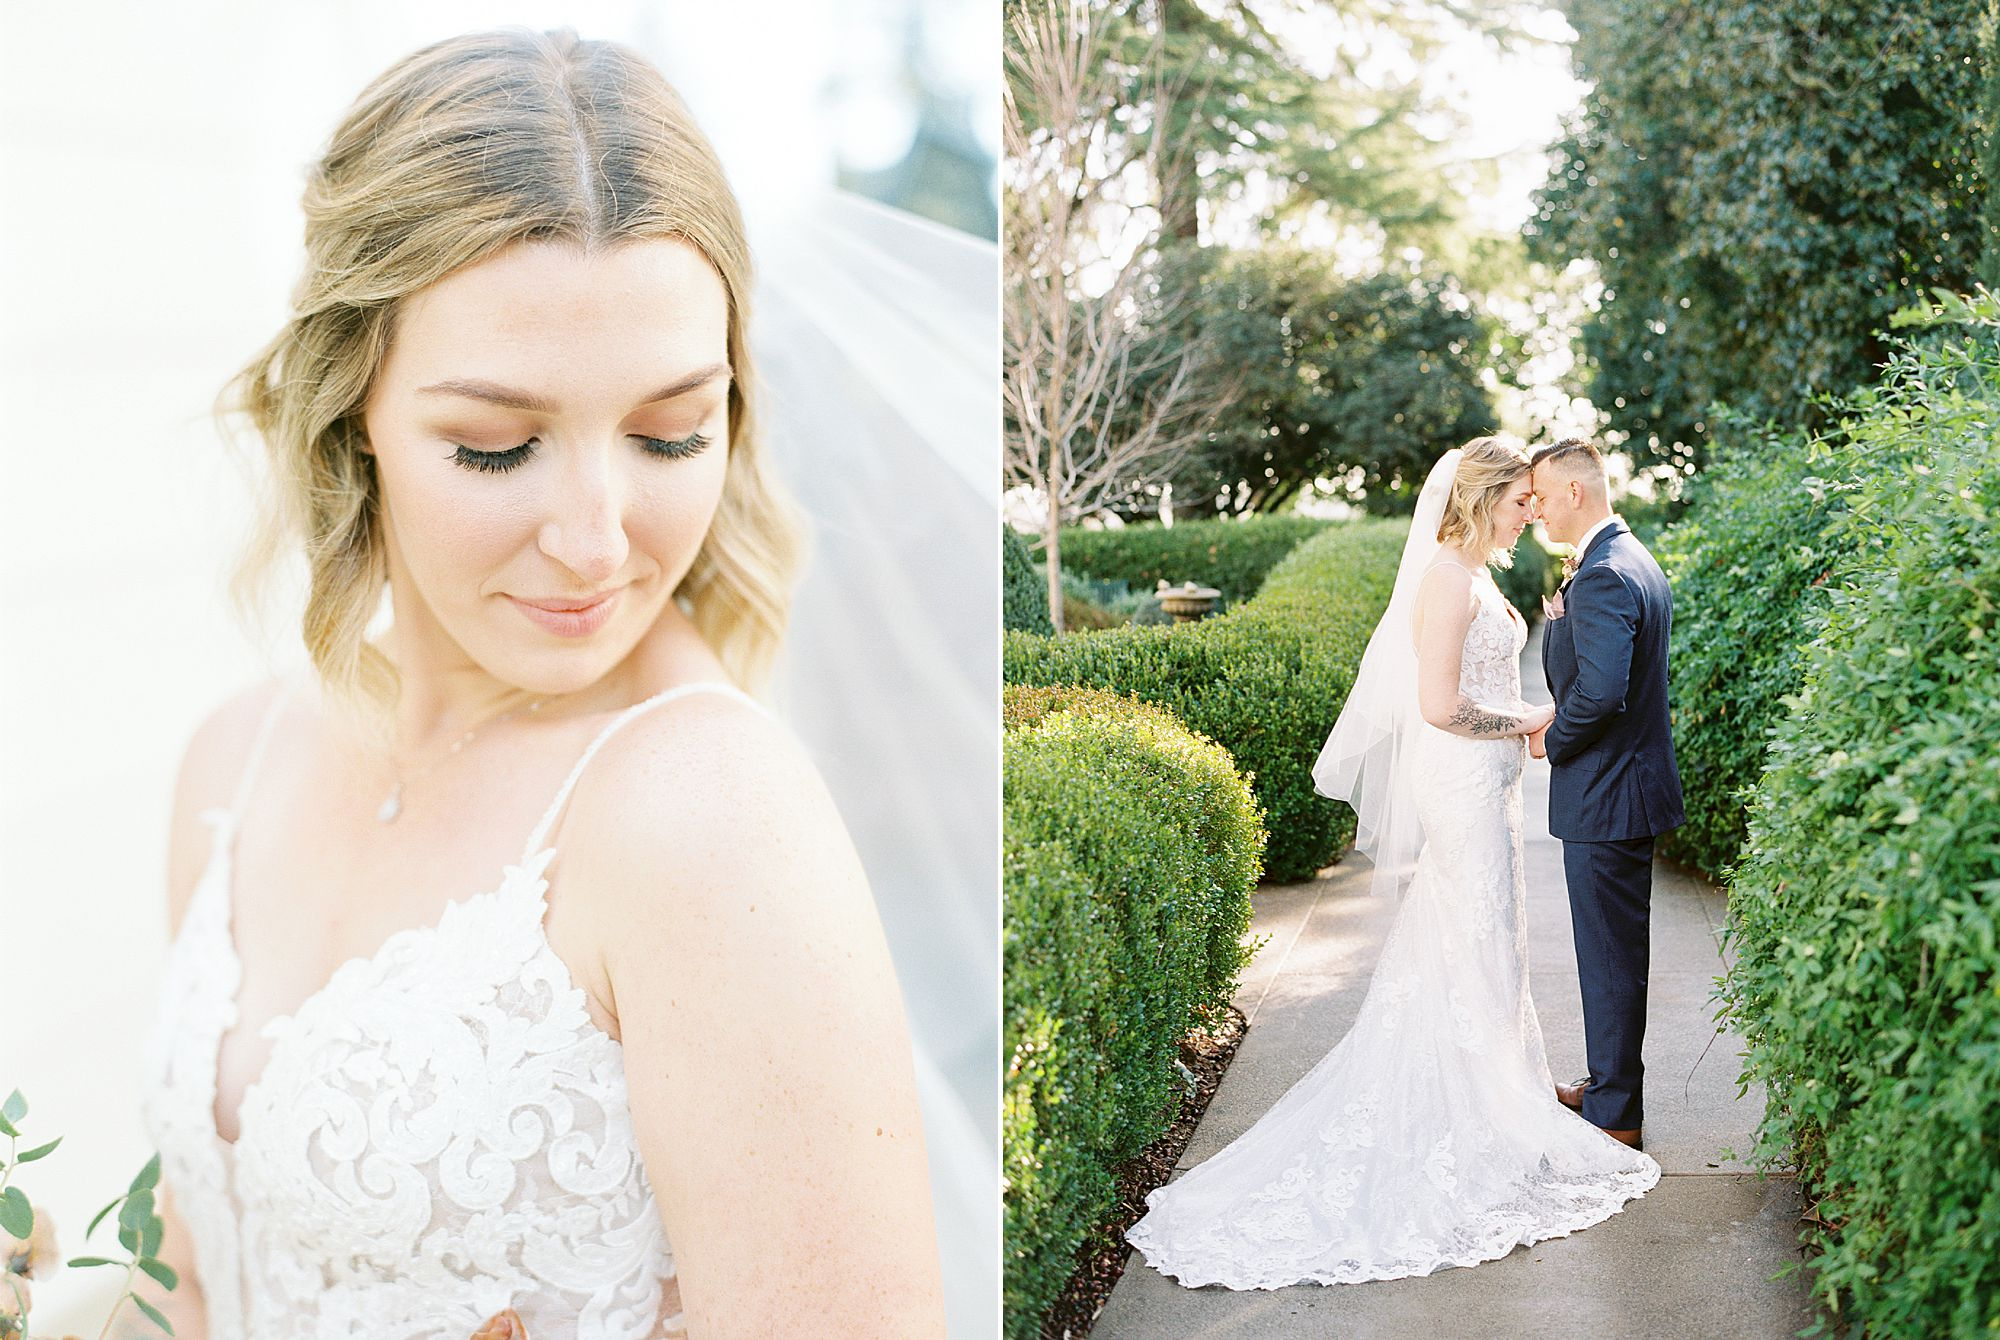 Inn at Park Winters Wedding - Lindsay and Shane - Ashley Baumgartner - Park Winters Wedding Photographer - Sacramento Wedding Photographer_0025.jpg